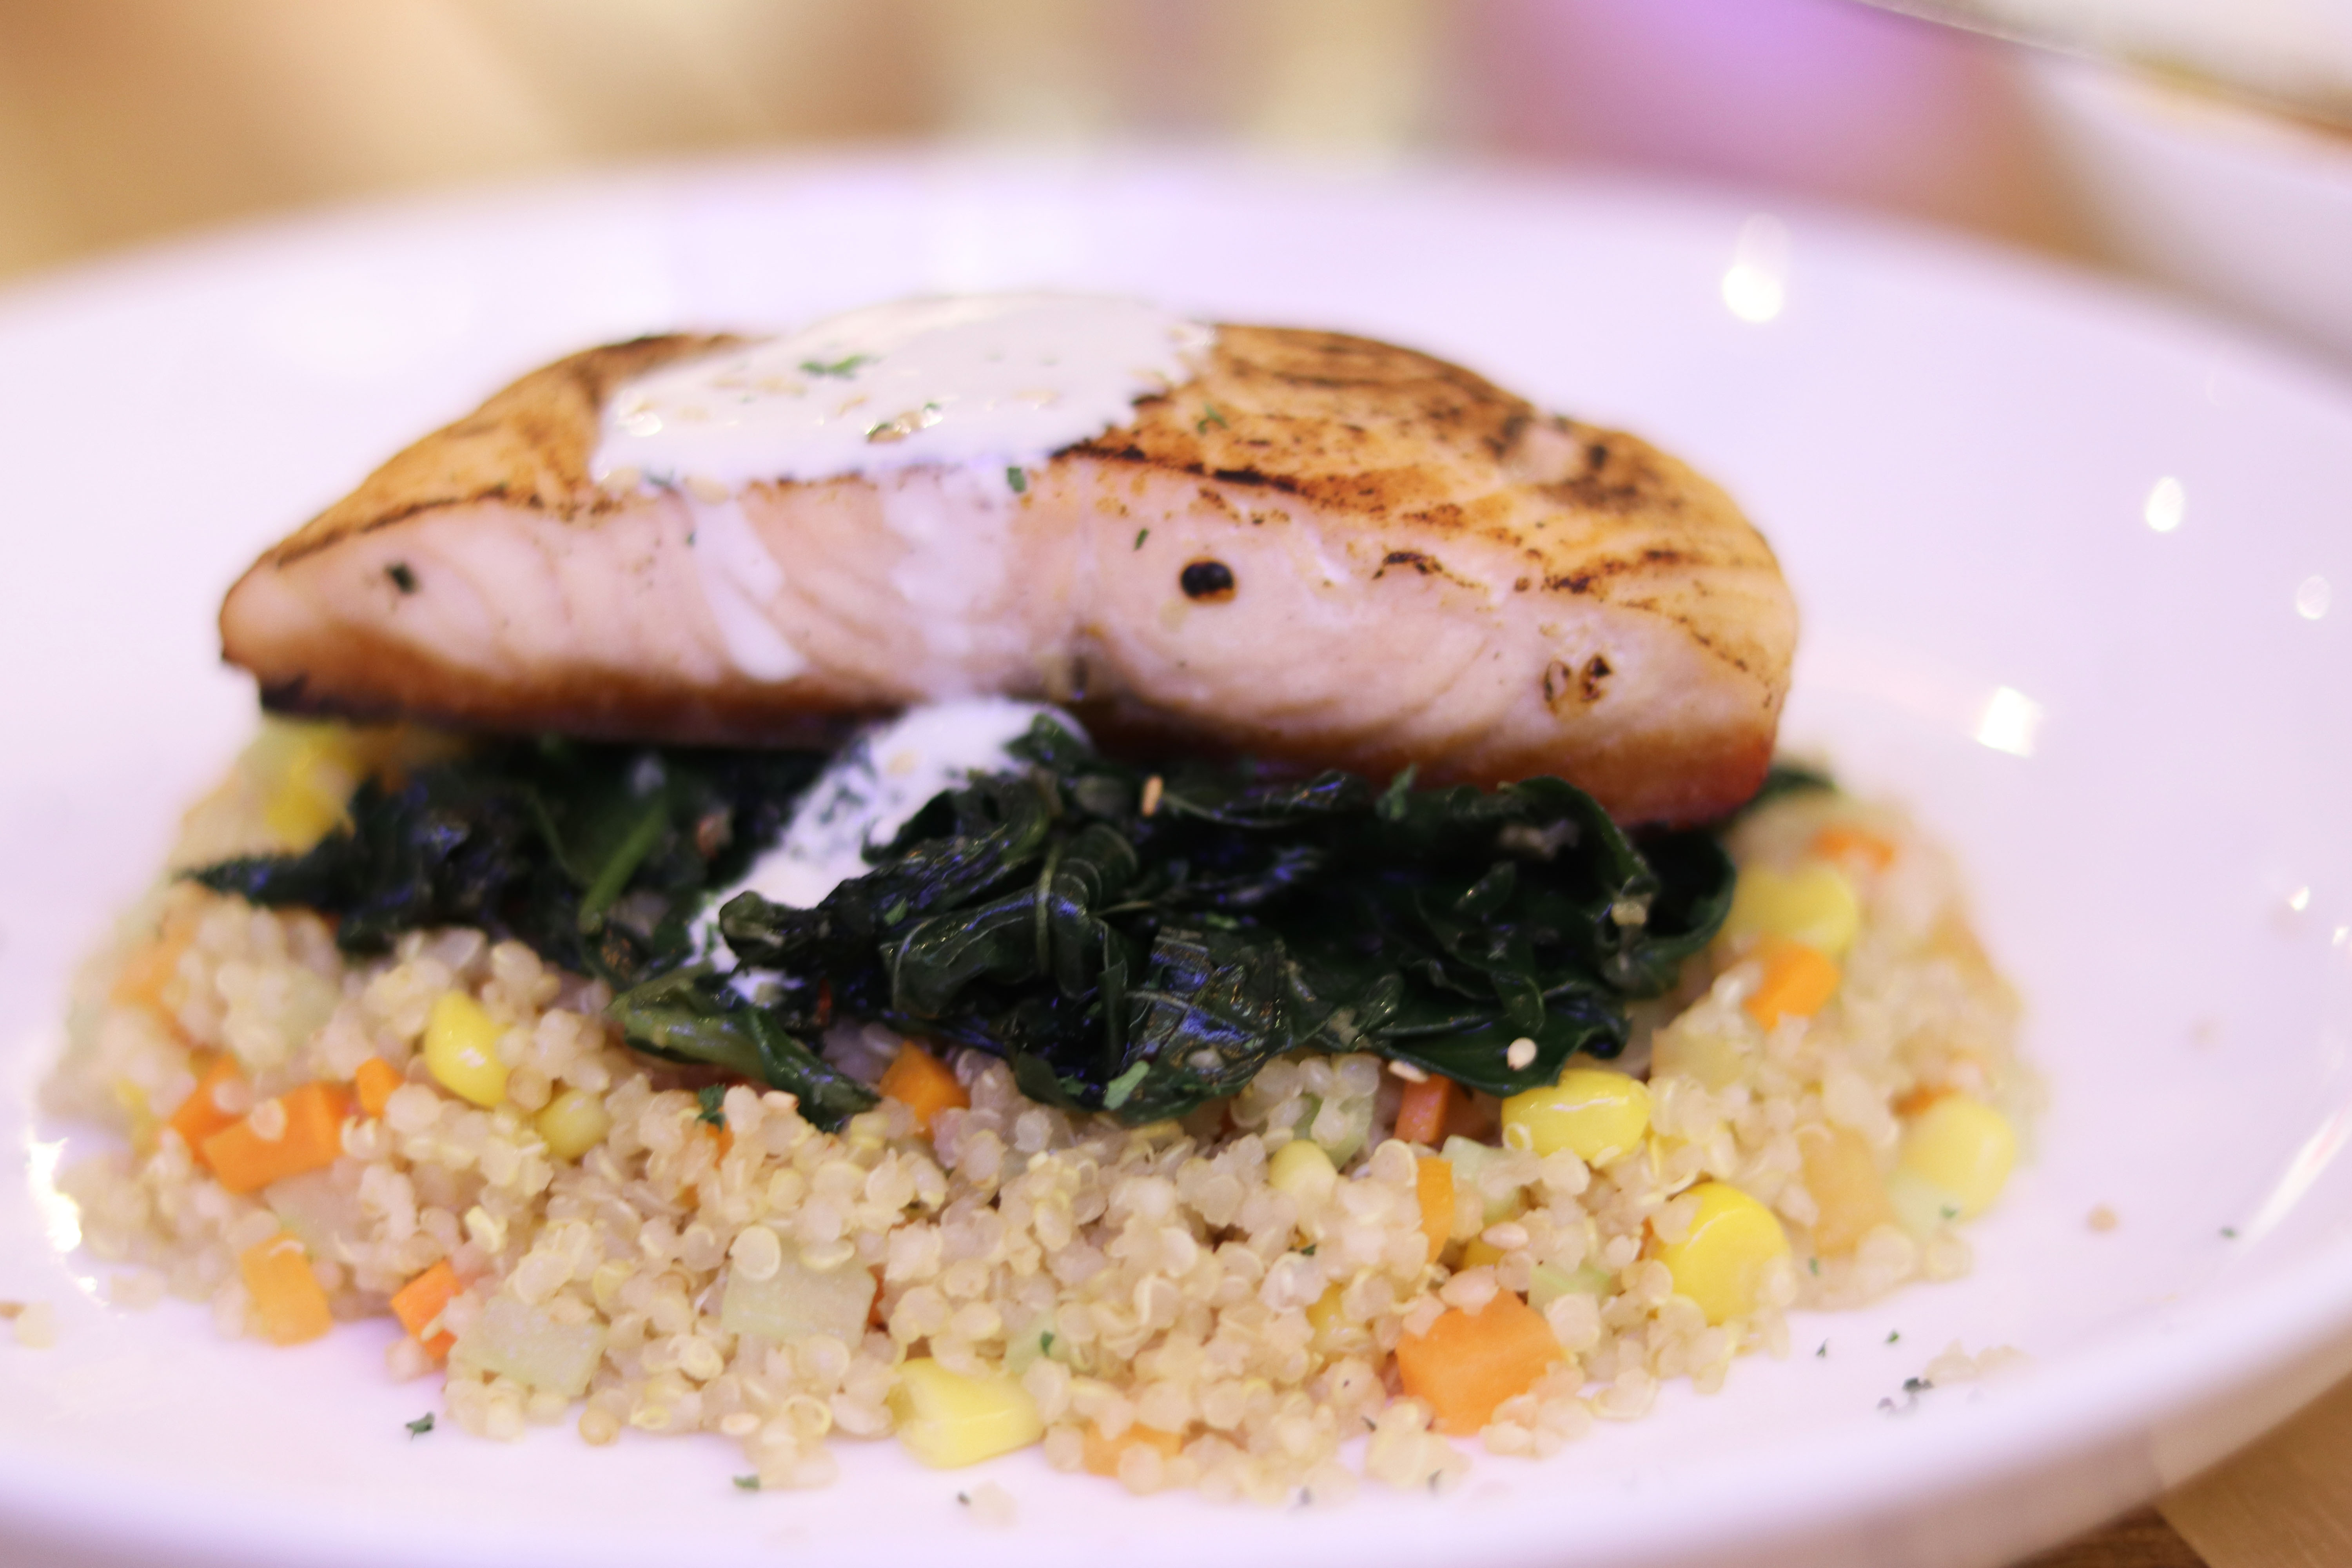 Healthy Meal Options at Tazza Cafe